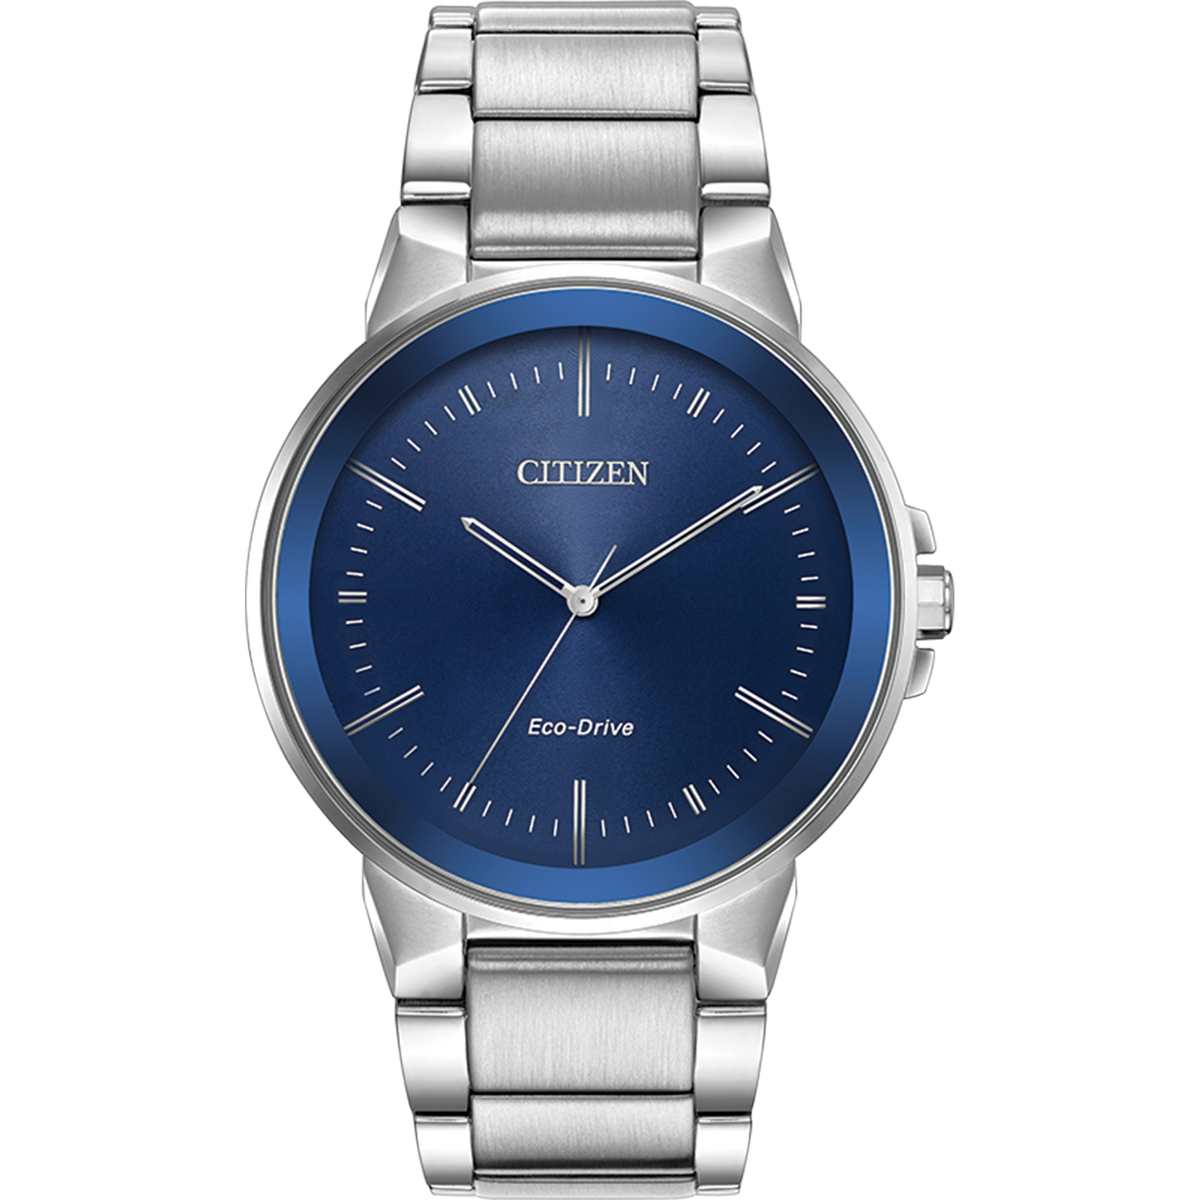 Citizen Eco-Drive - Axiom - Stainless Steel with Blue Dial